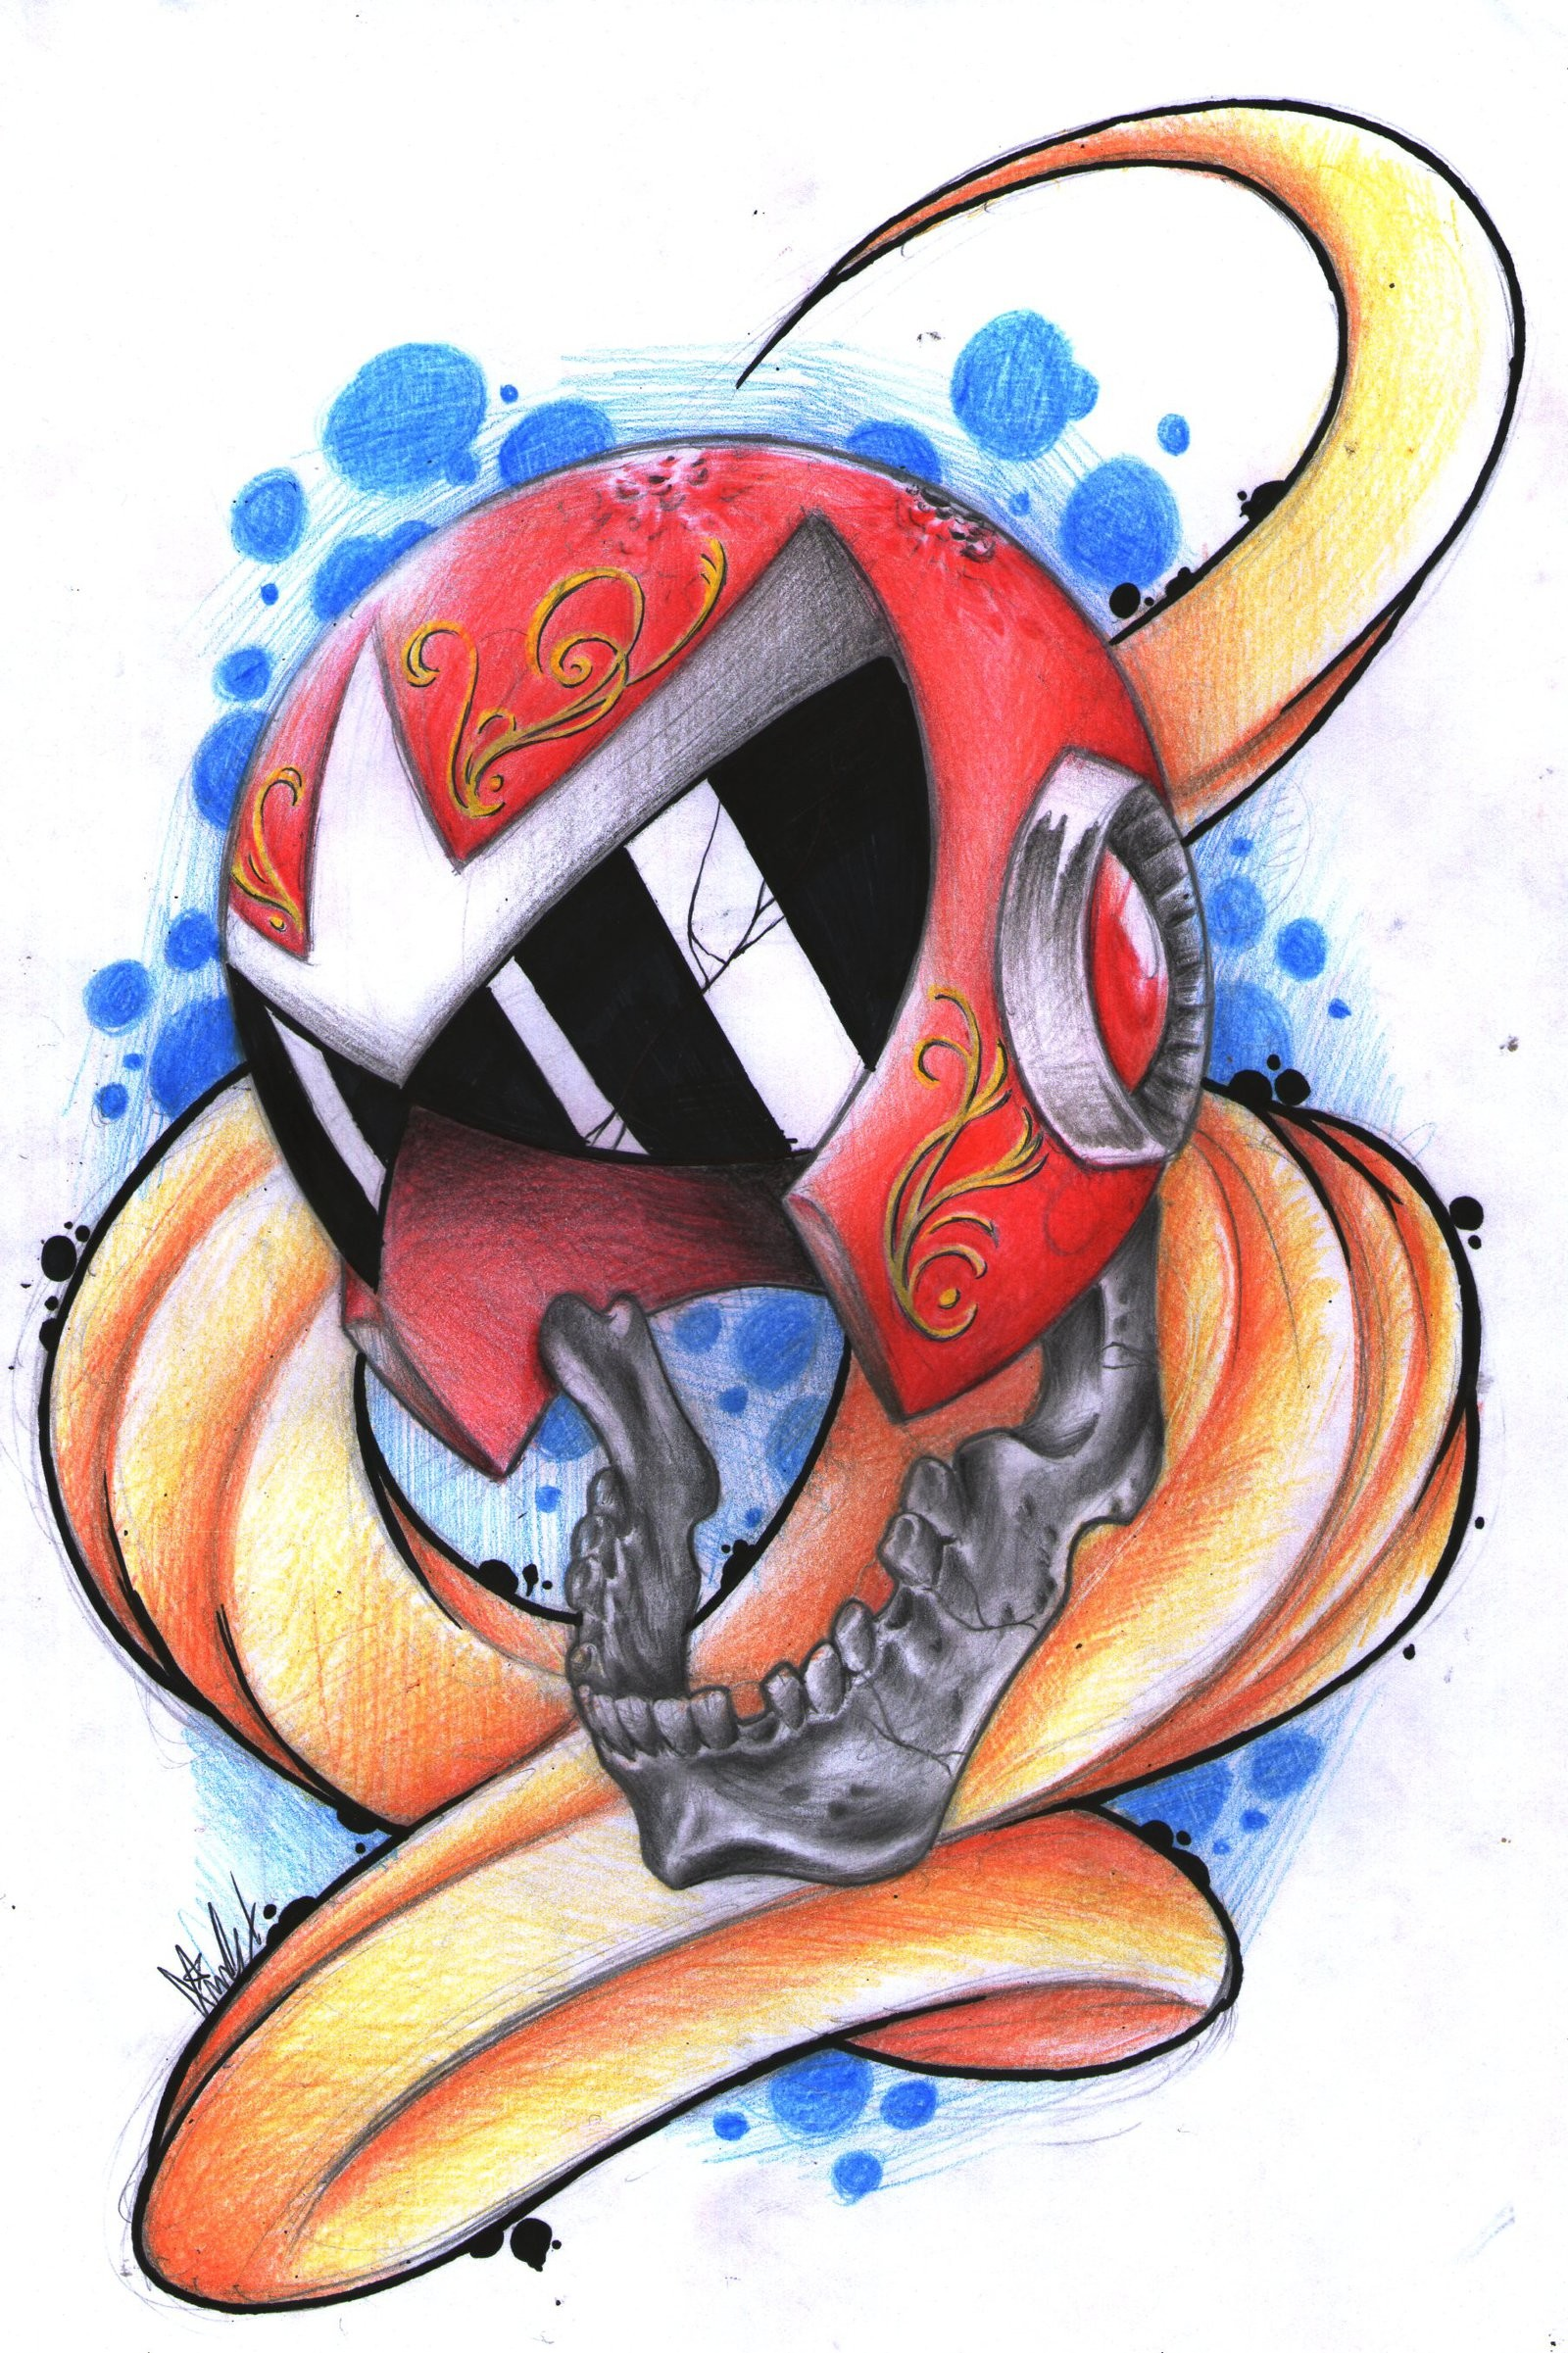 … Protoman (I stand alone, but I will not be broken. by Angel6fdeath